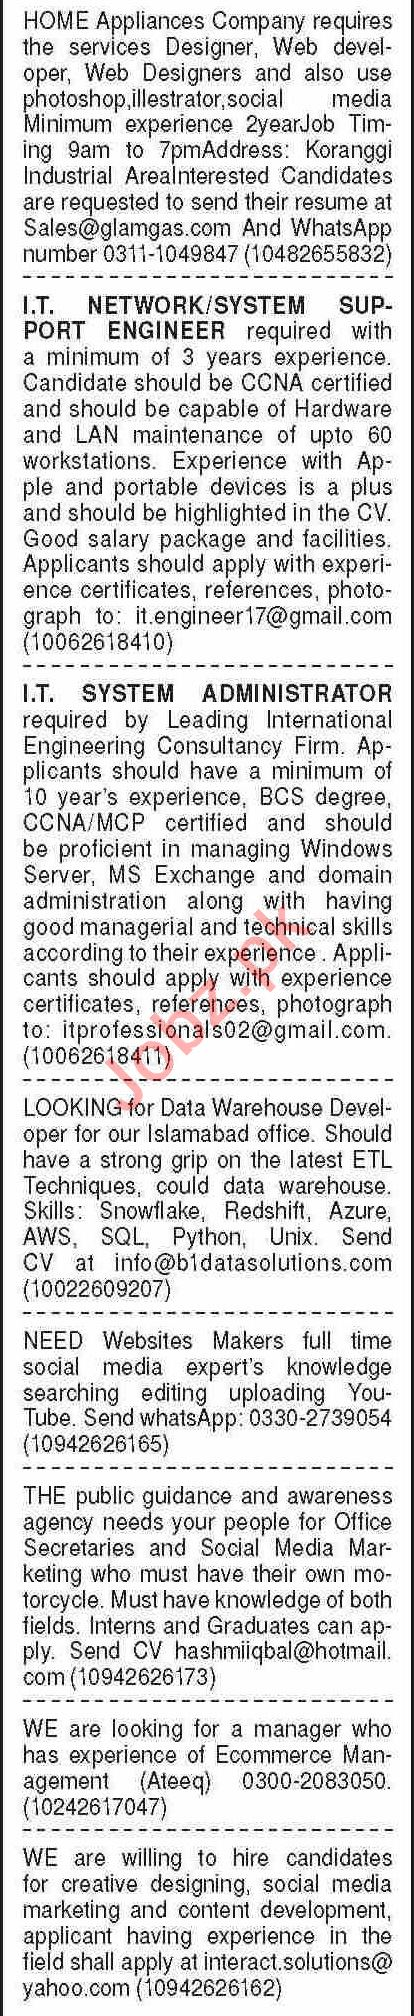 Dawn Sunday Classified Ads 4 July 2021 for Computer Staff